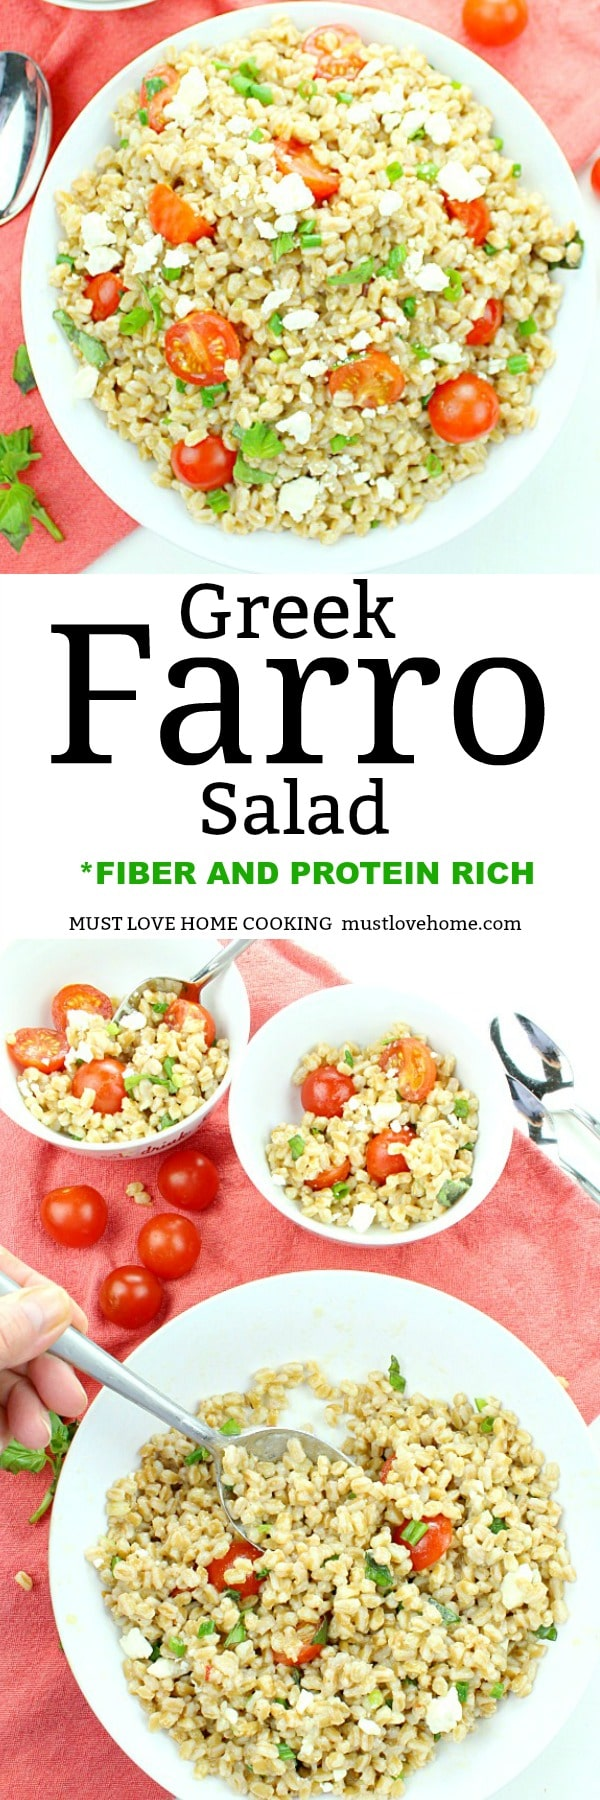 Greek Farro Tomato Salad rich in protein and fiber